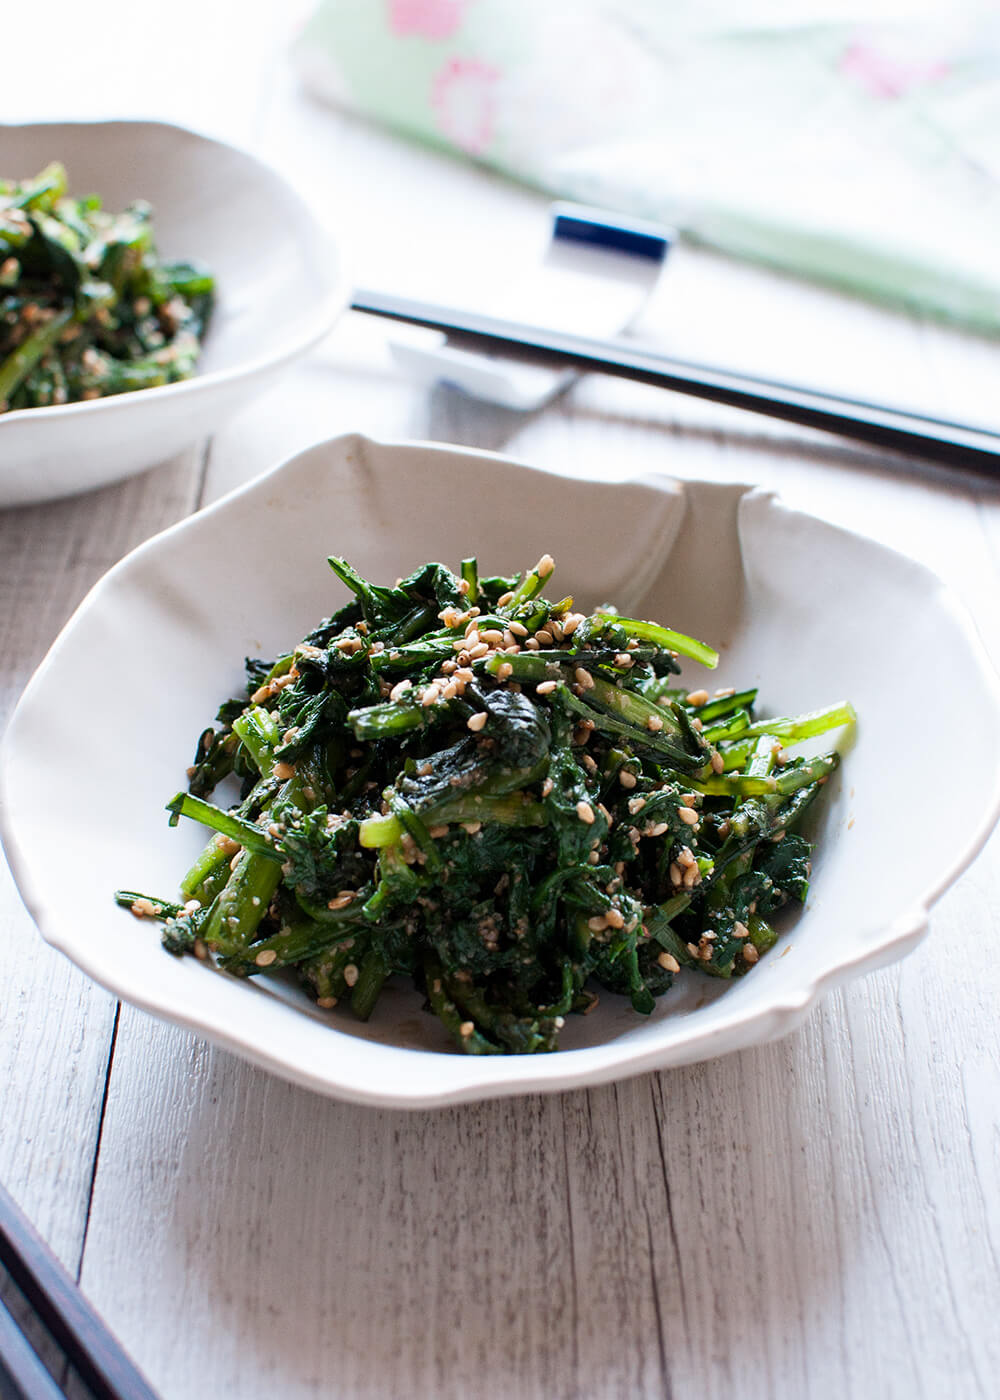 Goma-ae (胡麻和え) is a side dish made with vegetables and sweet sesame dressing. This is a pure vegetarian dish and very quick to make. The dressing has the full flavour of sesame with a little bit of sweetness and it goes so well with the slight bitterness of chrysanthemum leaves.